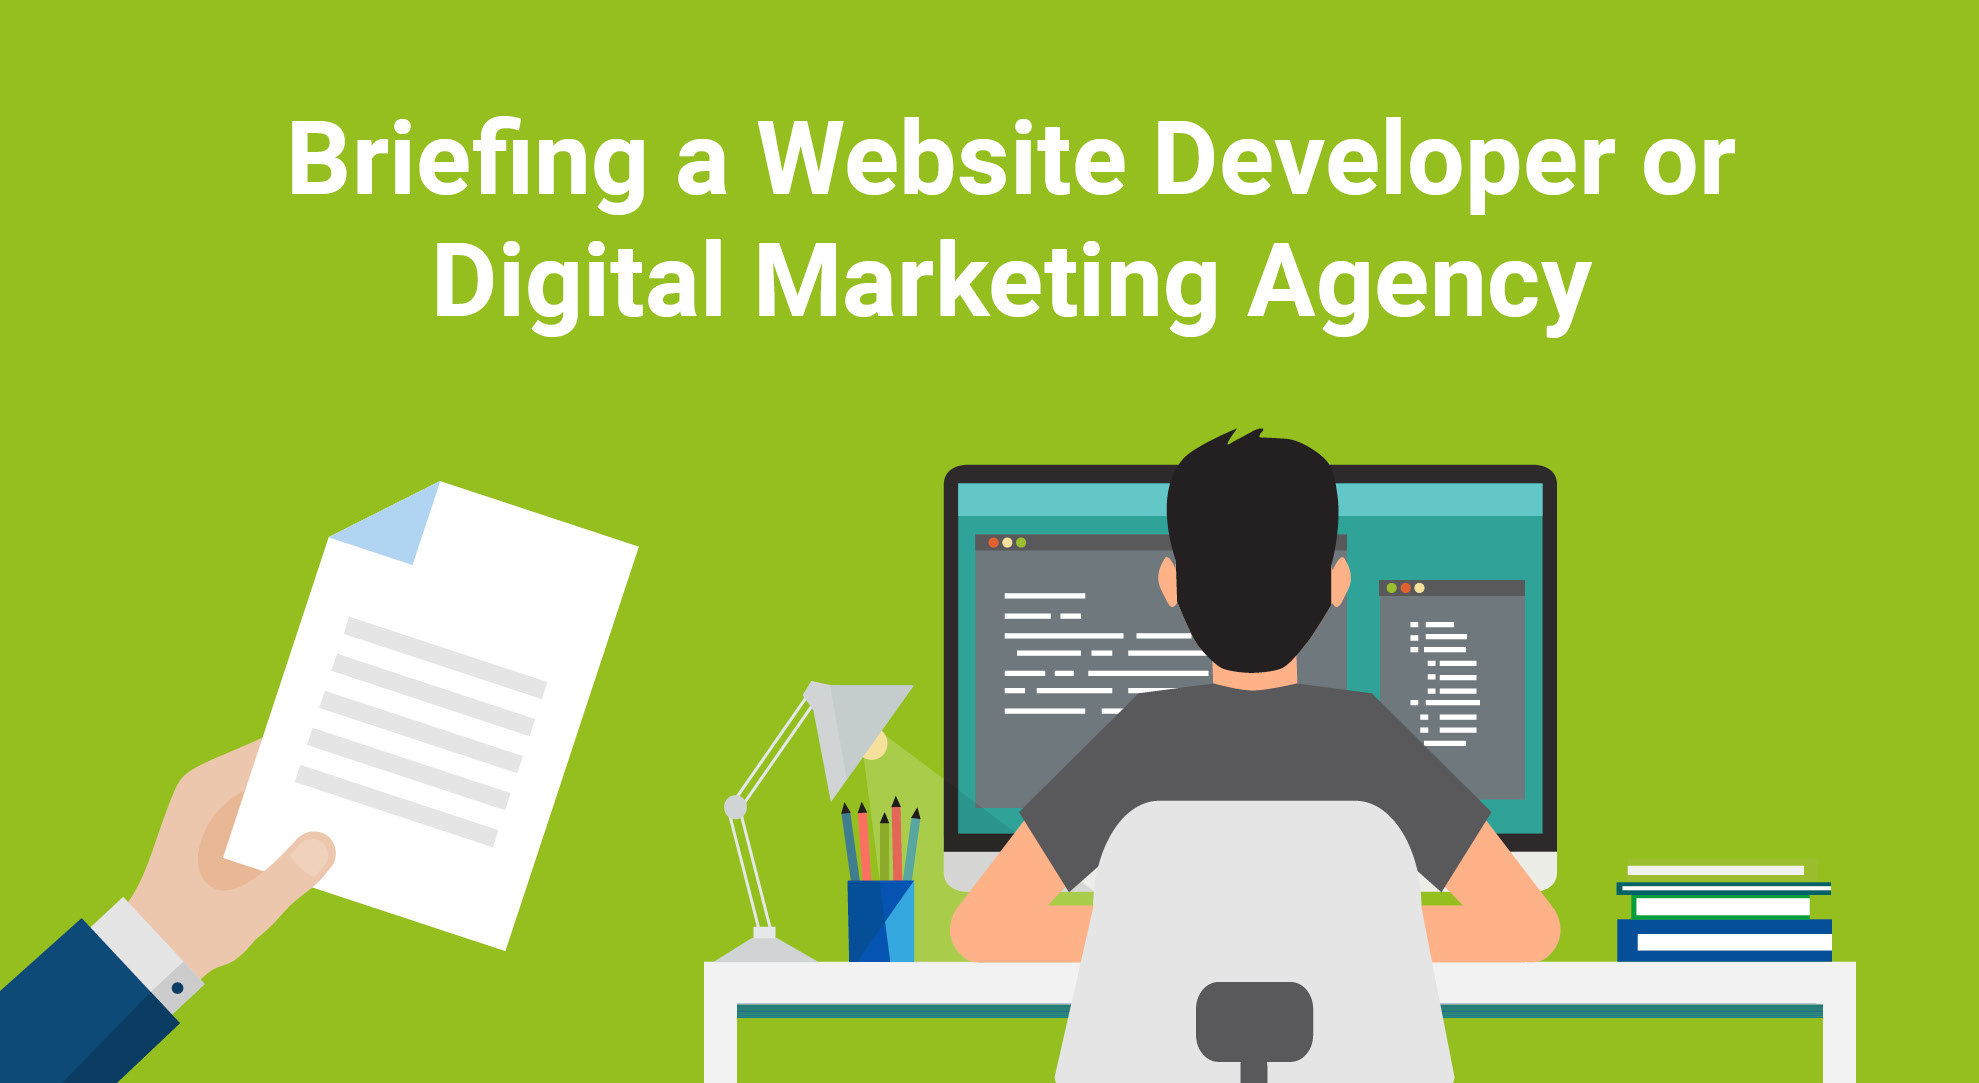 Briefing a Website Developer or Digital Marketing Agency